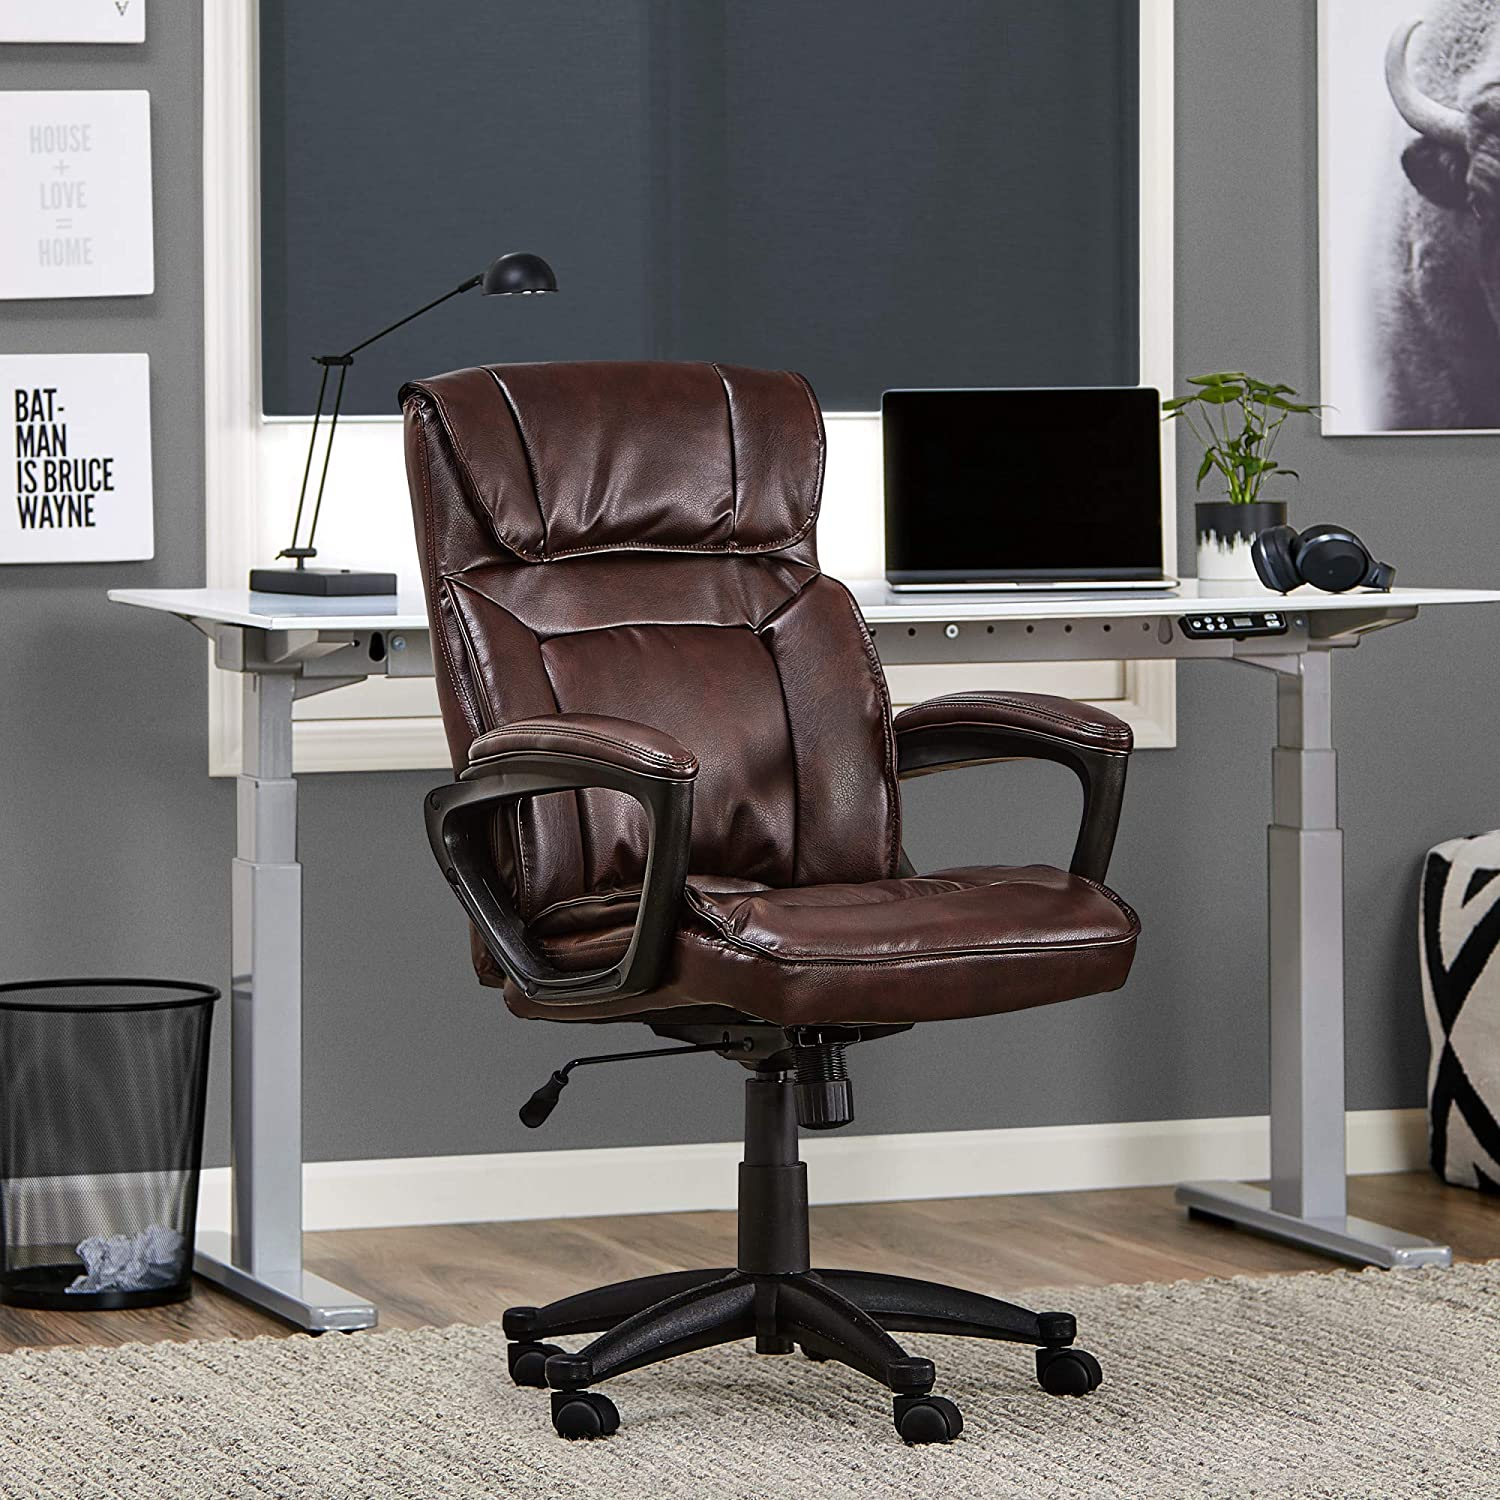 81BieFP4IrL. AC SL1500 - What Are The Best Chairs For Back Pain At Home - ChairPicks